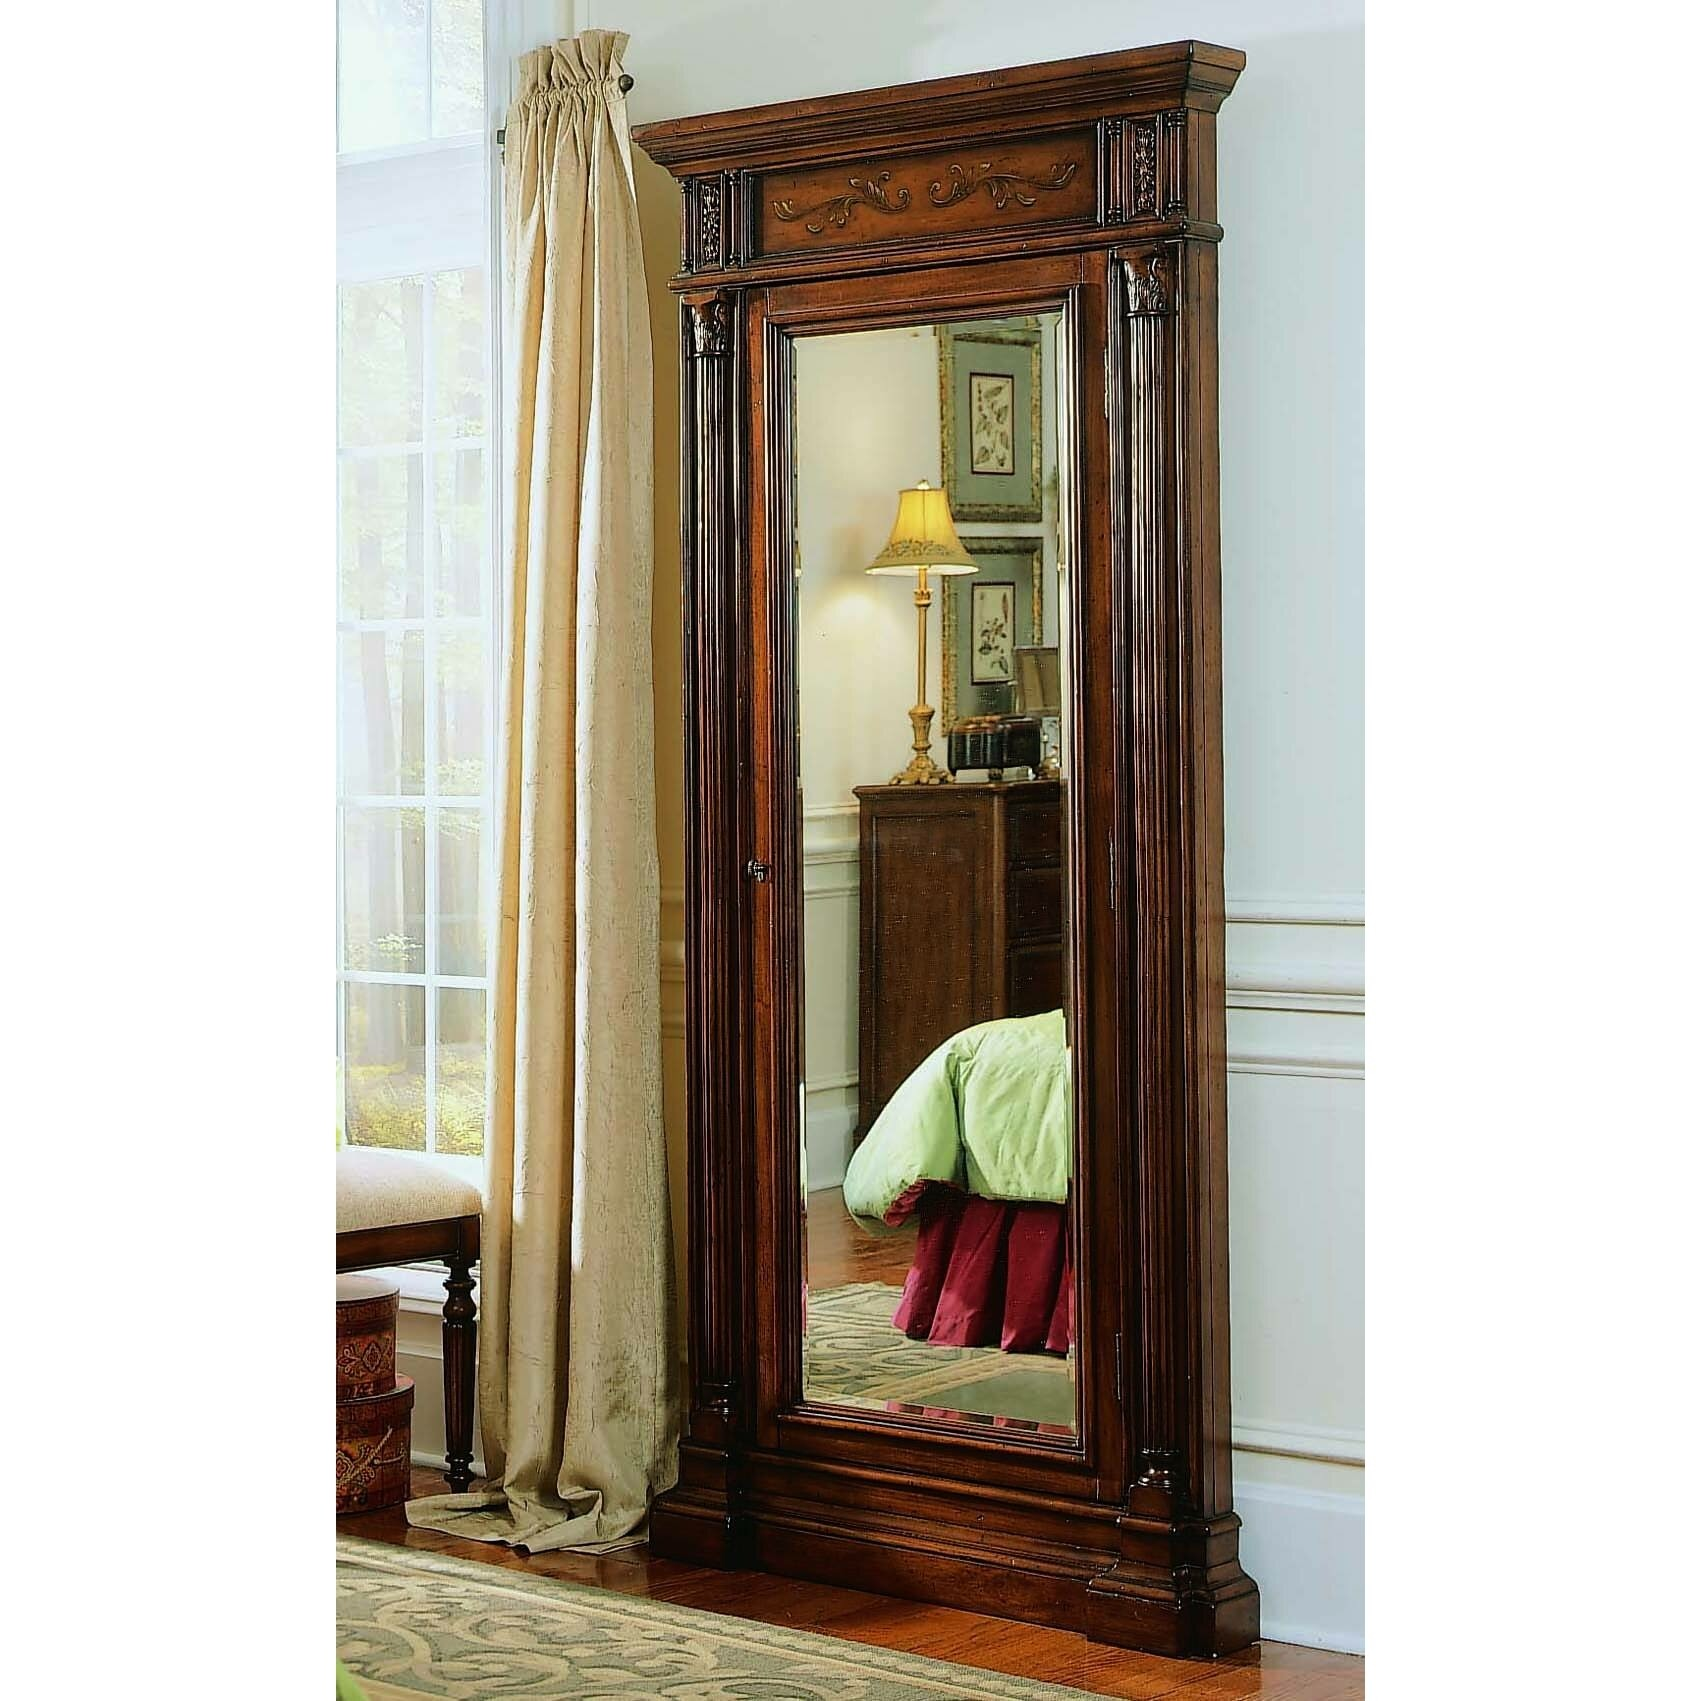 Hooker Furniture Seven Seas Floor Mirror With Jewelry Armoire 3